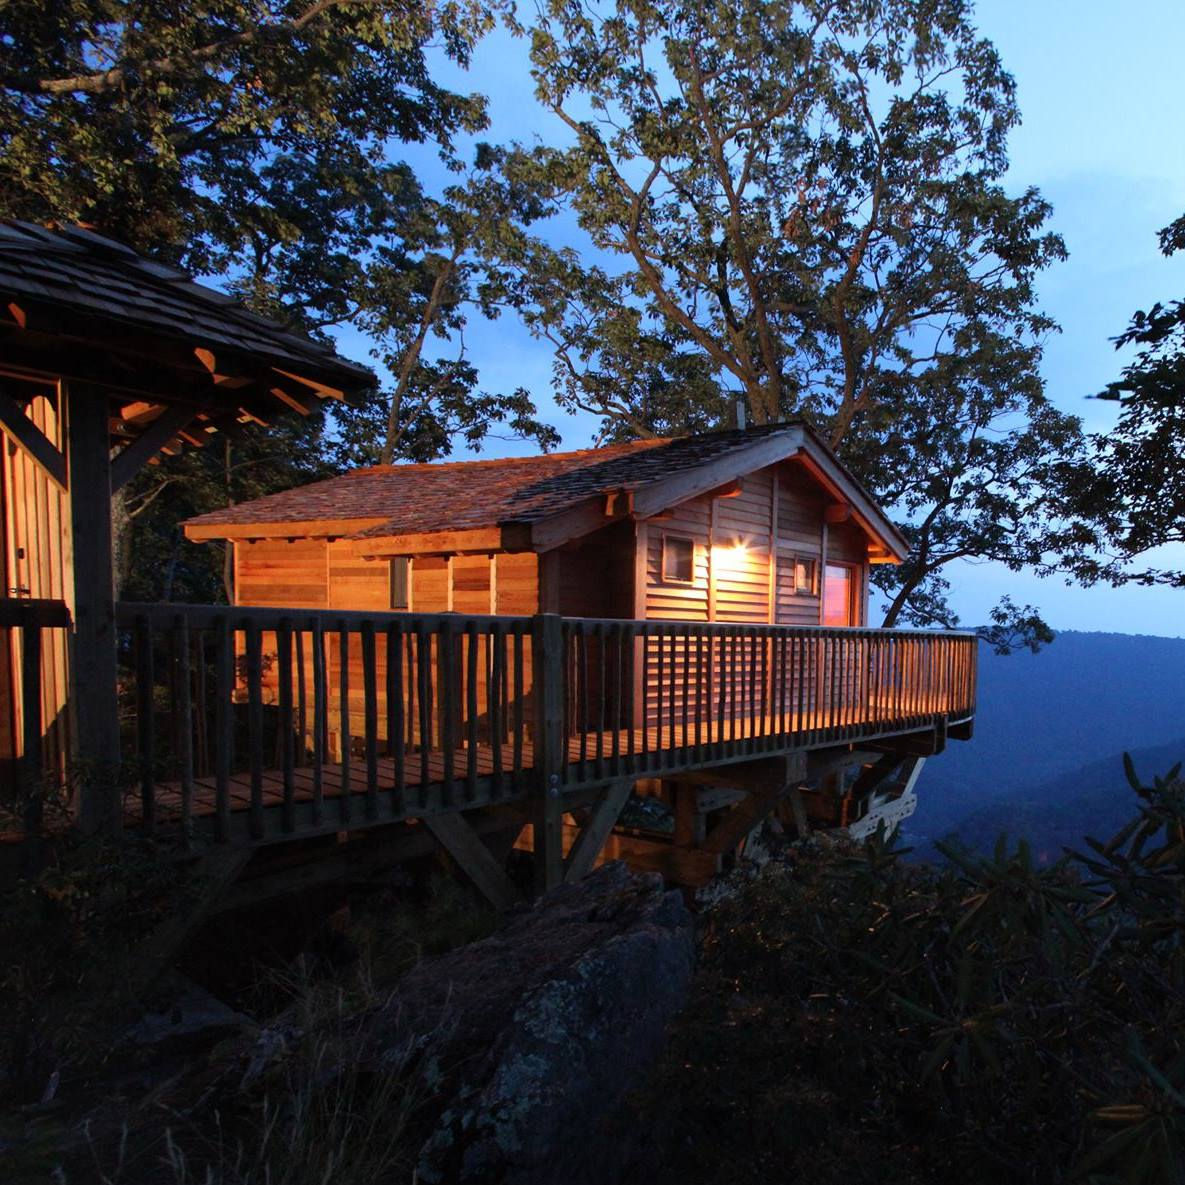 Primland Resort Has The Best Treehouse Accommodations In